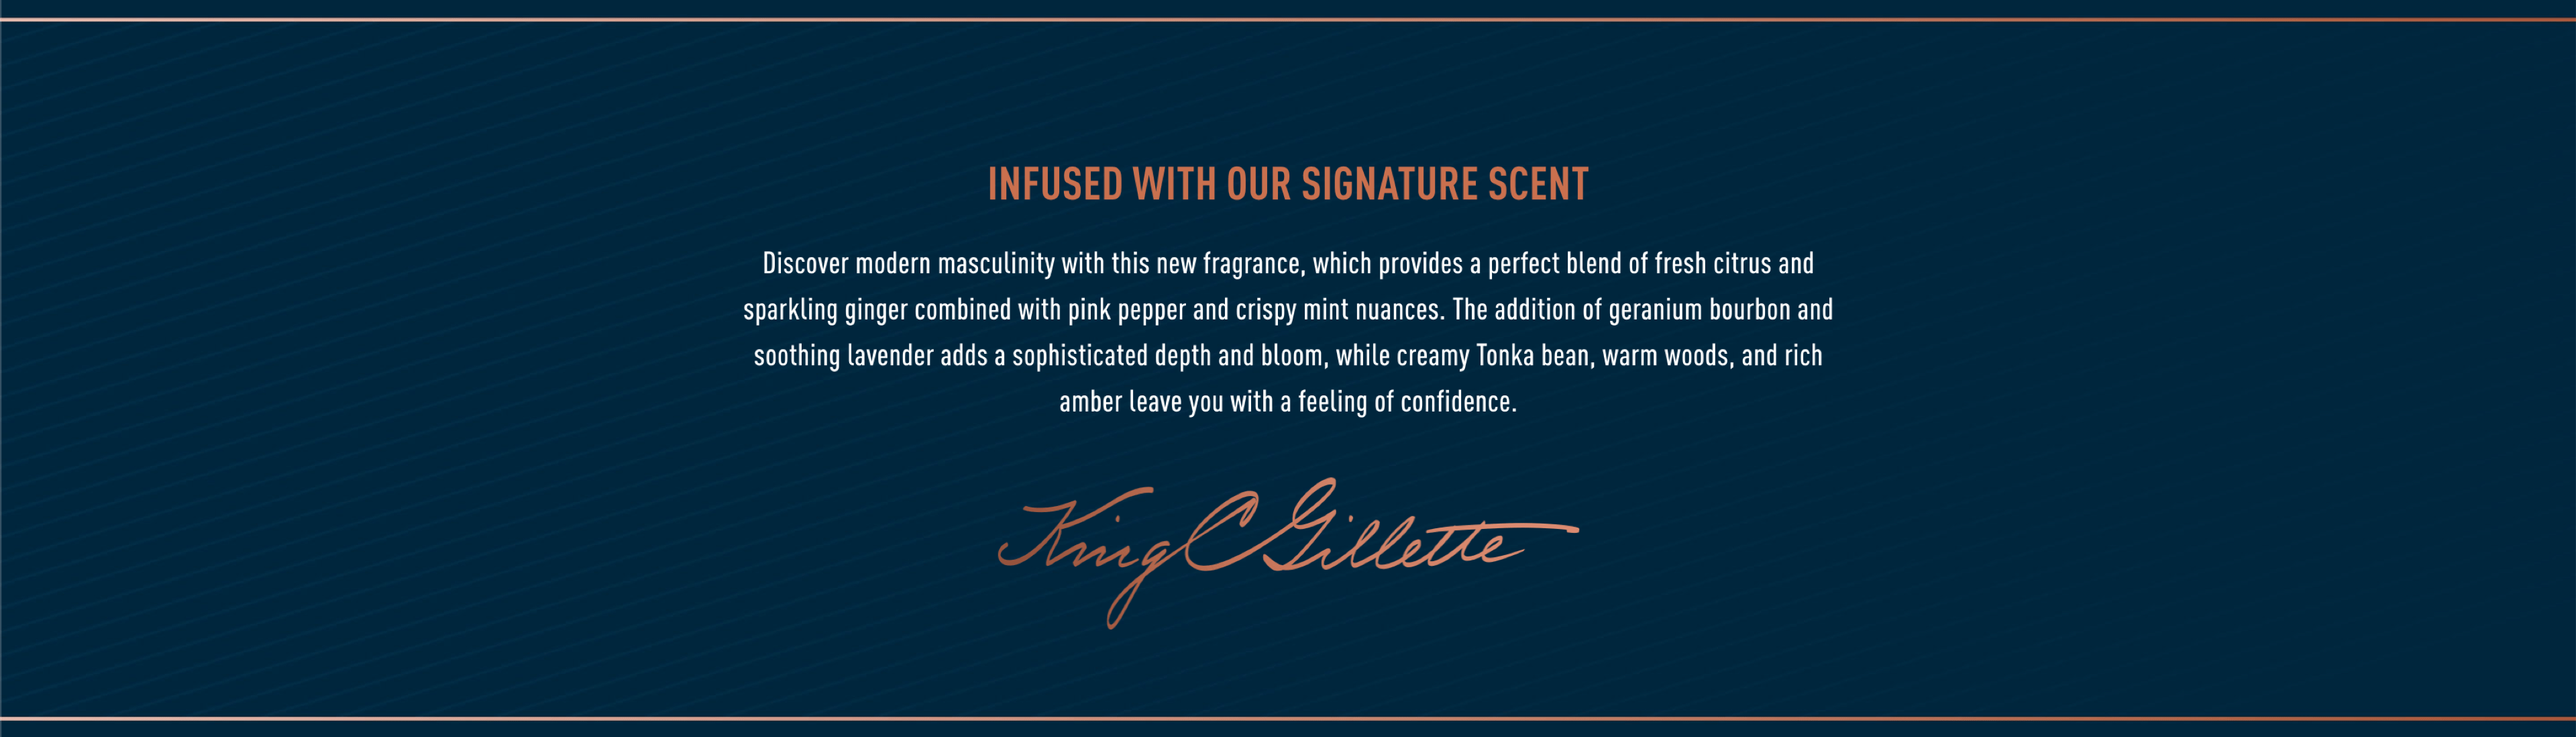 King C. Gillette Signature Scent